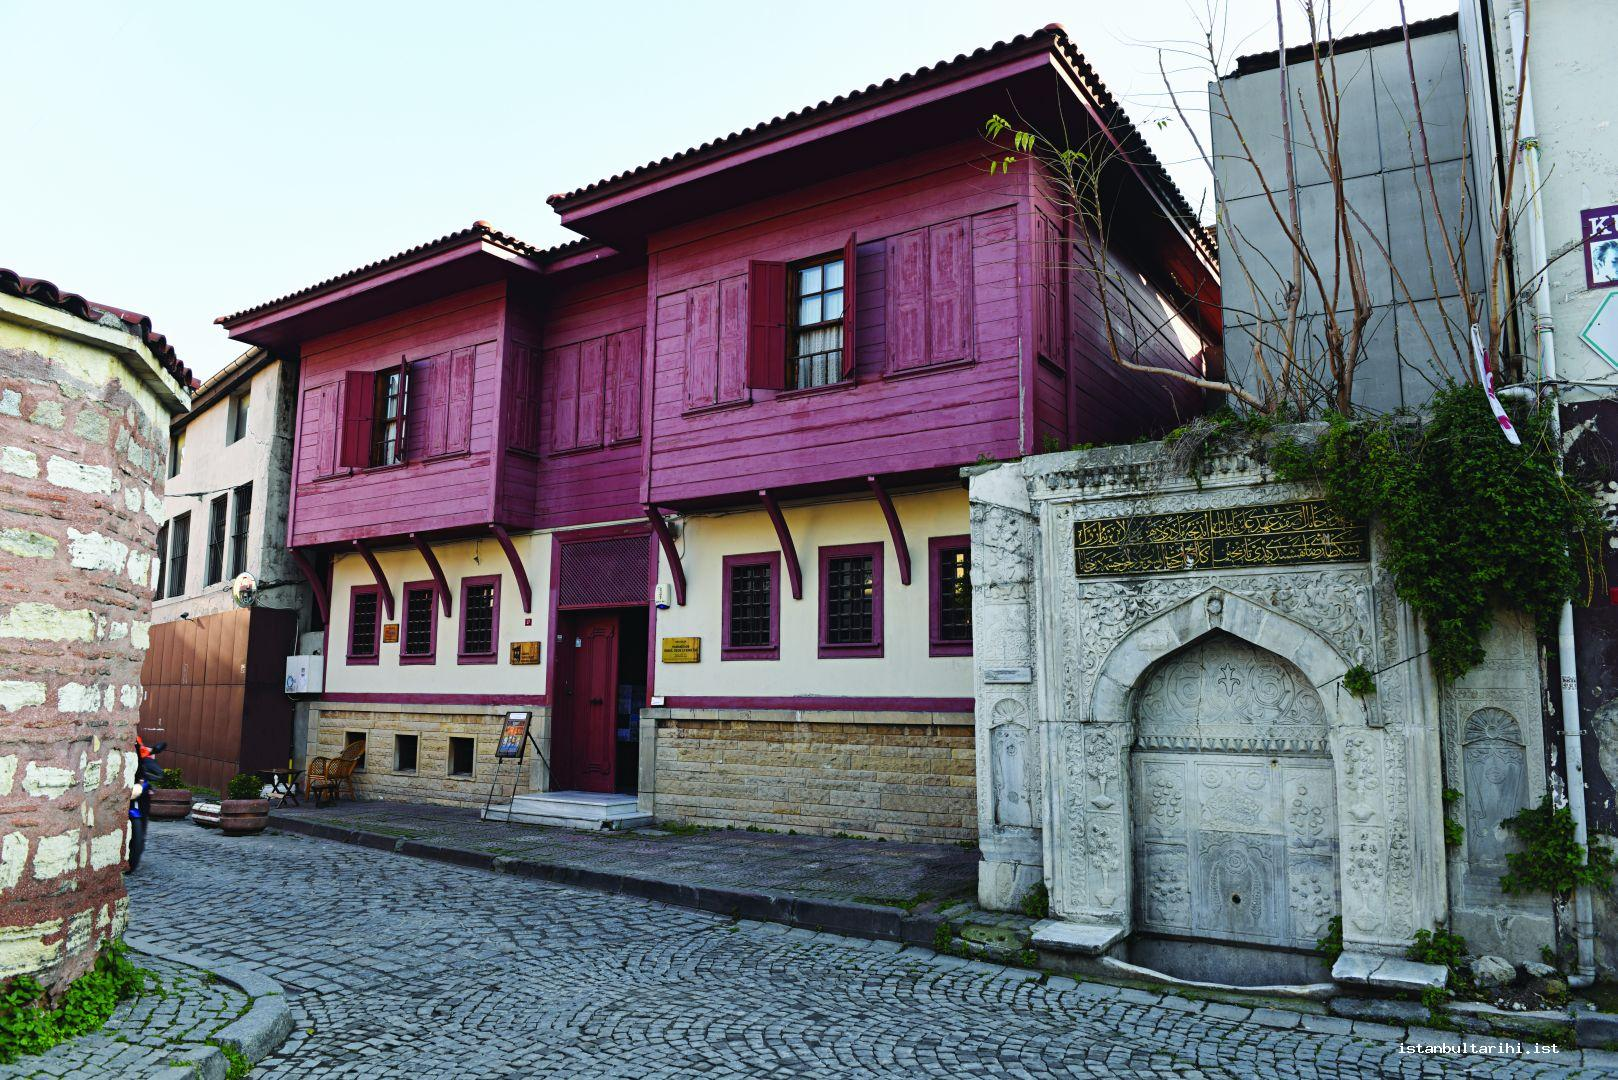 10- The house of Hammamizade İsmail Dede Efendi who was one of the composers of the period of Sultan Selim III